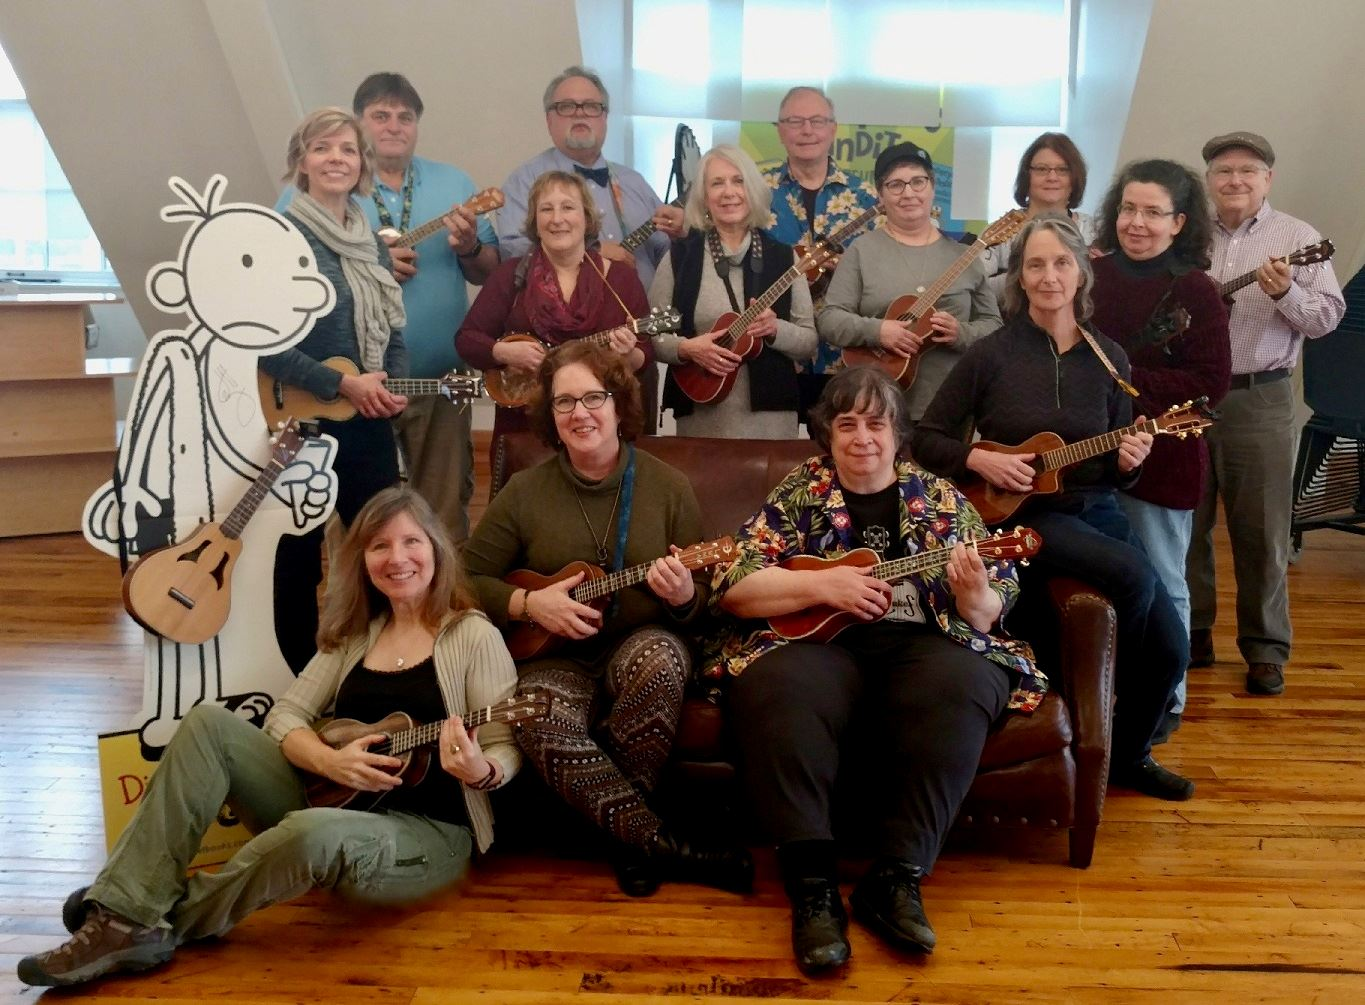 The Unlikely Strummers